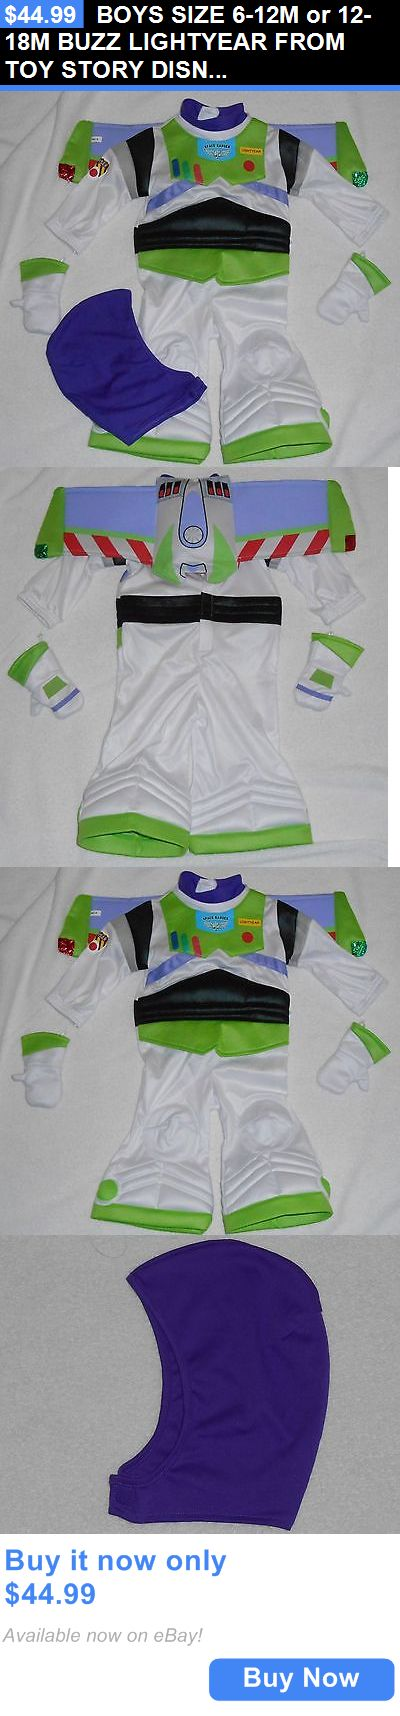 Kids Costumes: Boys Size 6-12M Or 12-18M Buzz Lightyear From Toy Story Disney Store Costume Nwt BUY IT NOW ONLY: $44.99